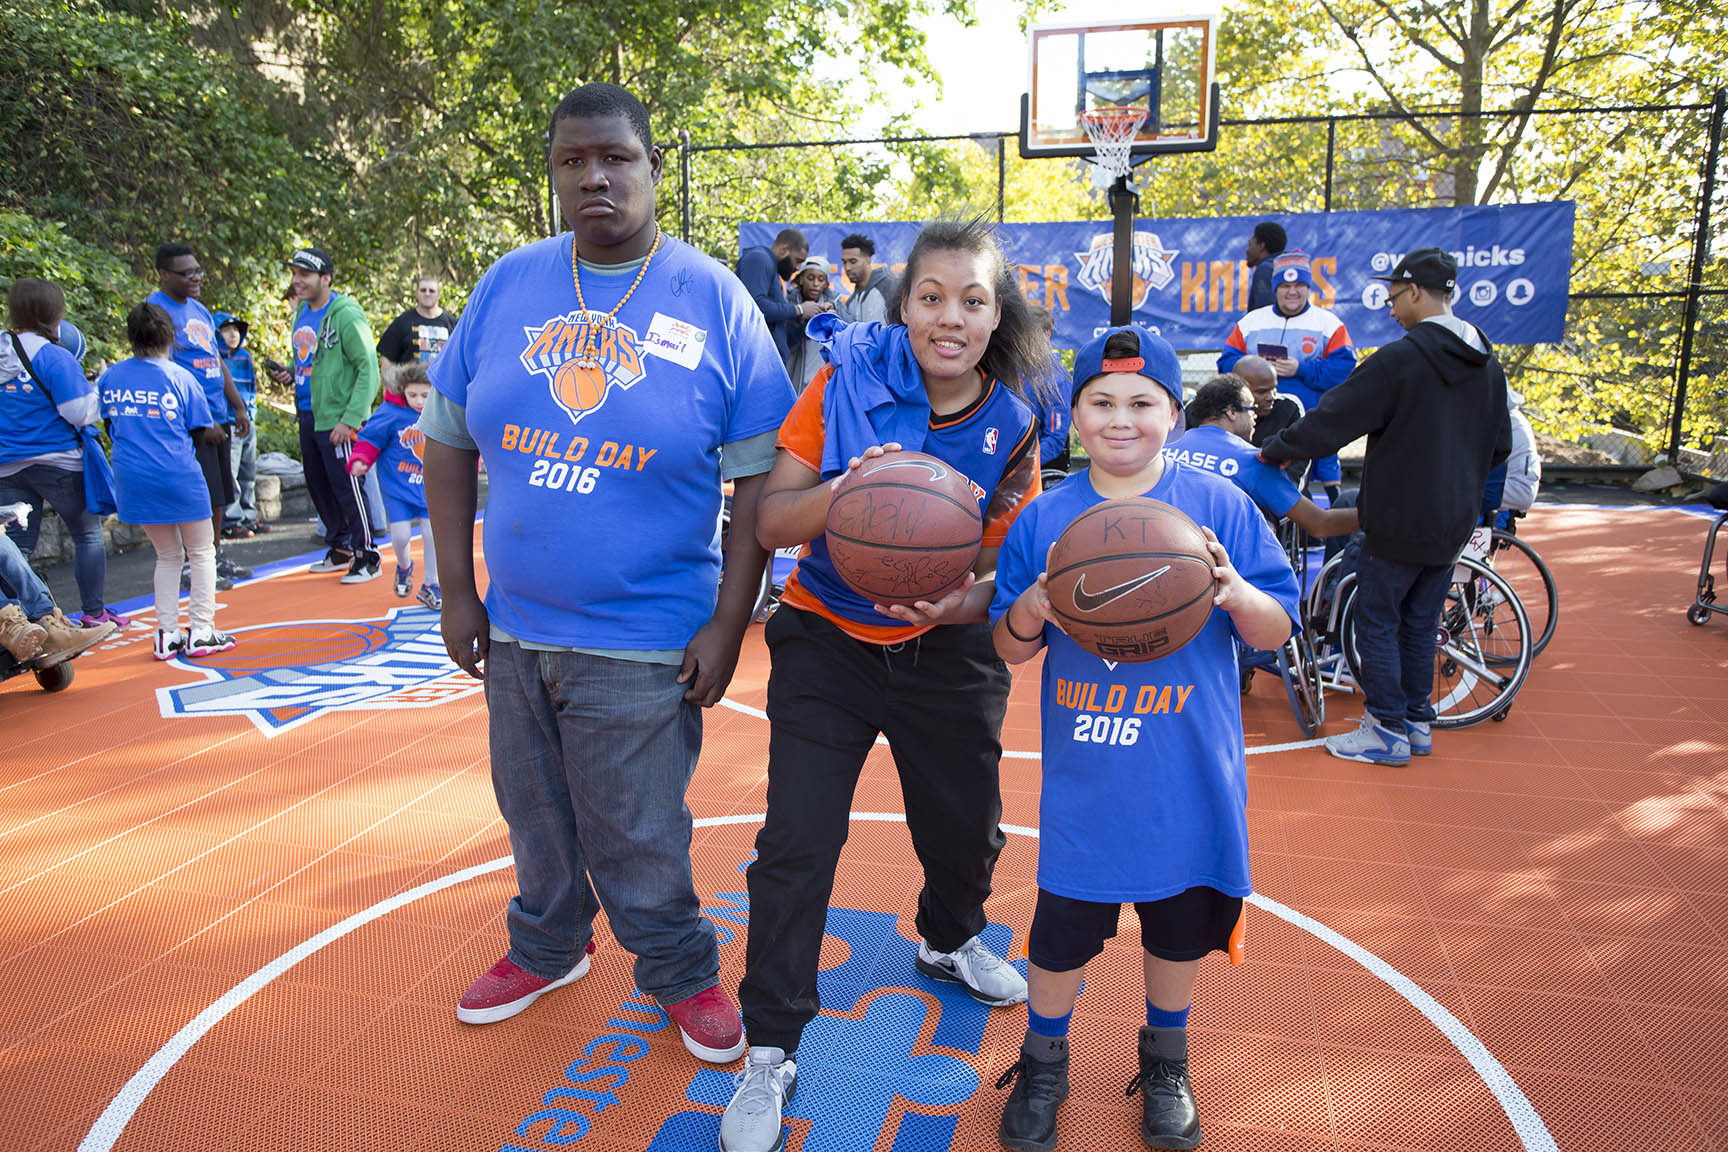 KaBoom Playground Build Presented by Chase | New York Knicks